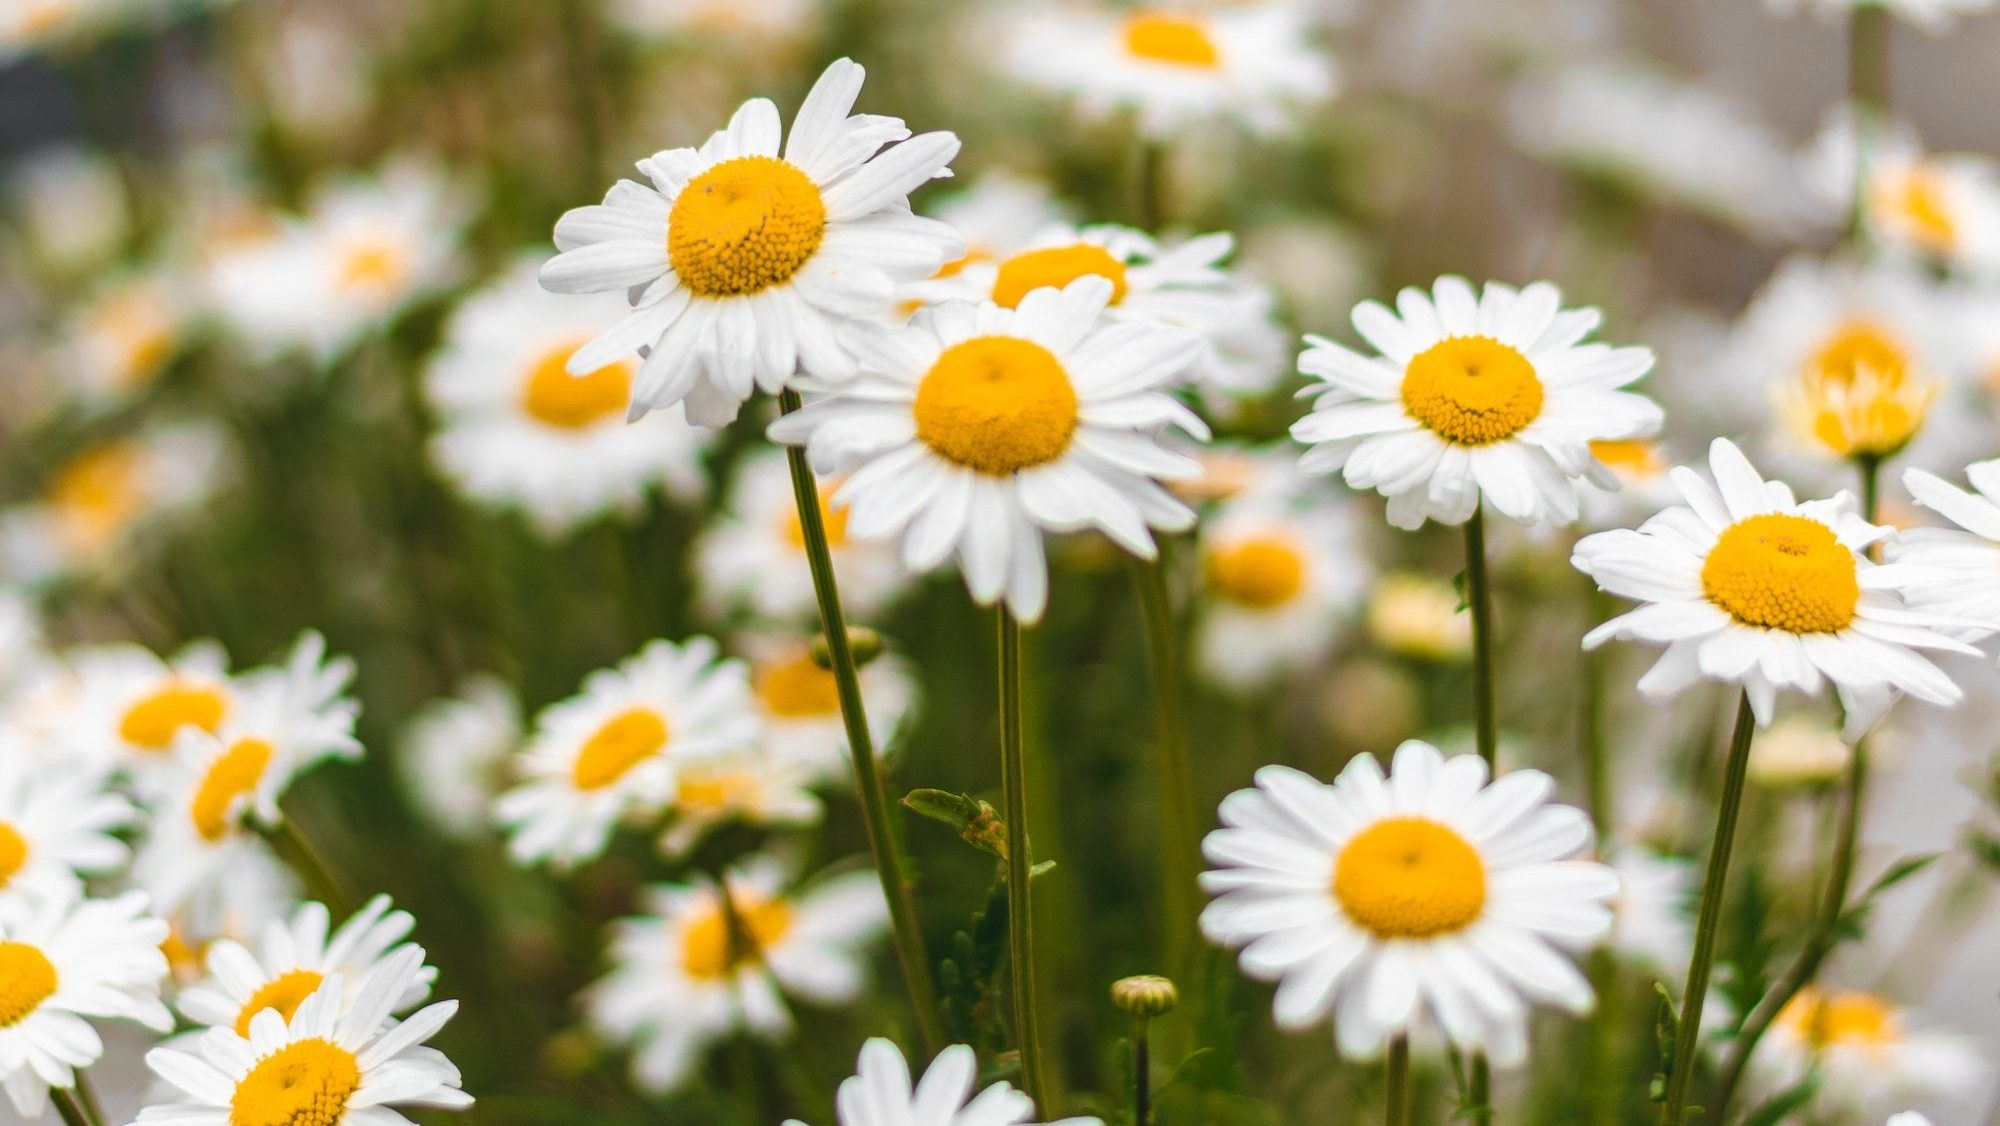 A close up image of a field of white and yellow daisies.